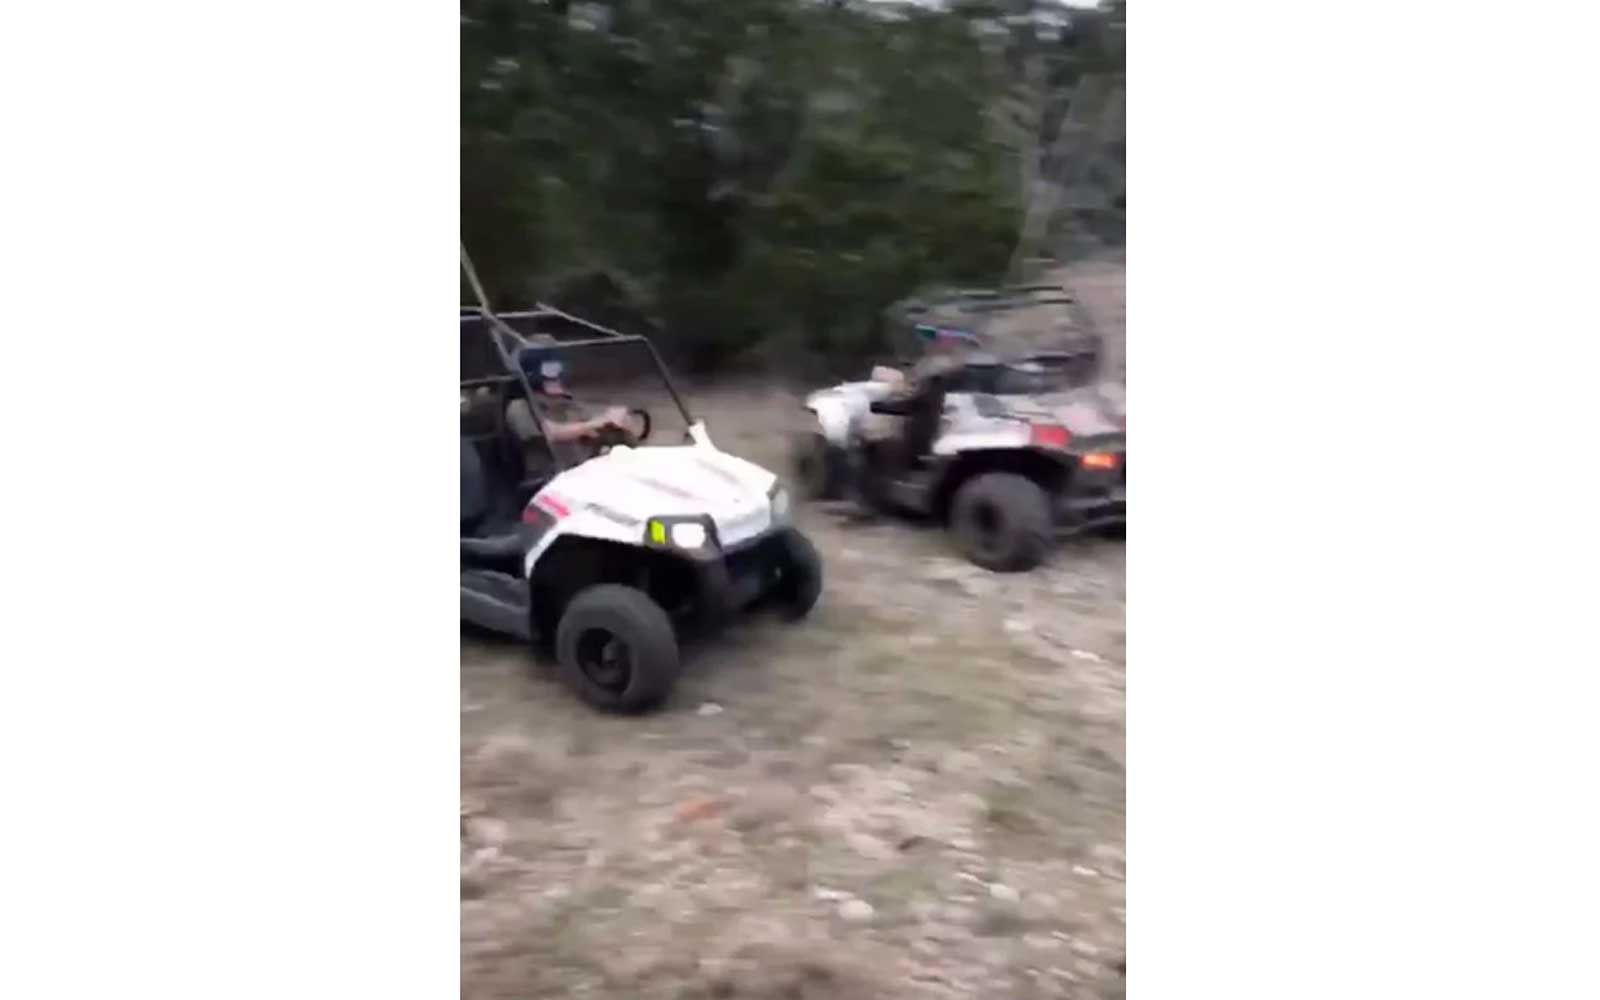 Gwen Stefani's kids riding ATVs